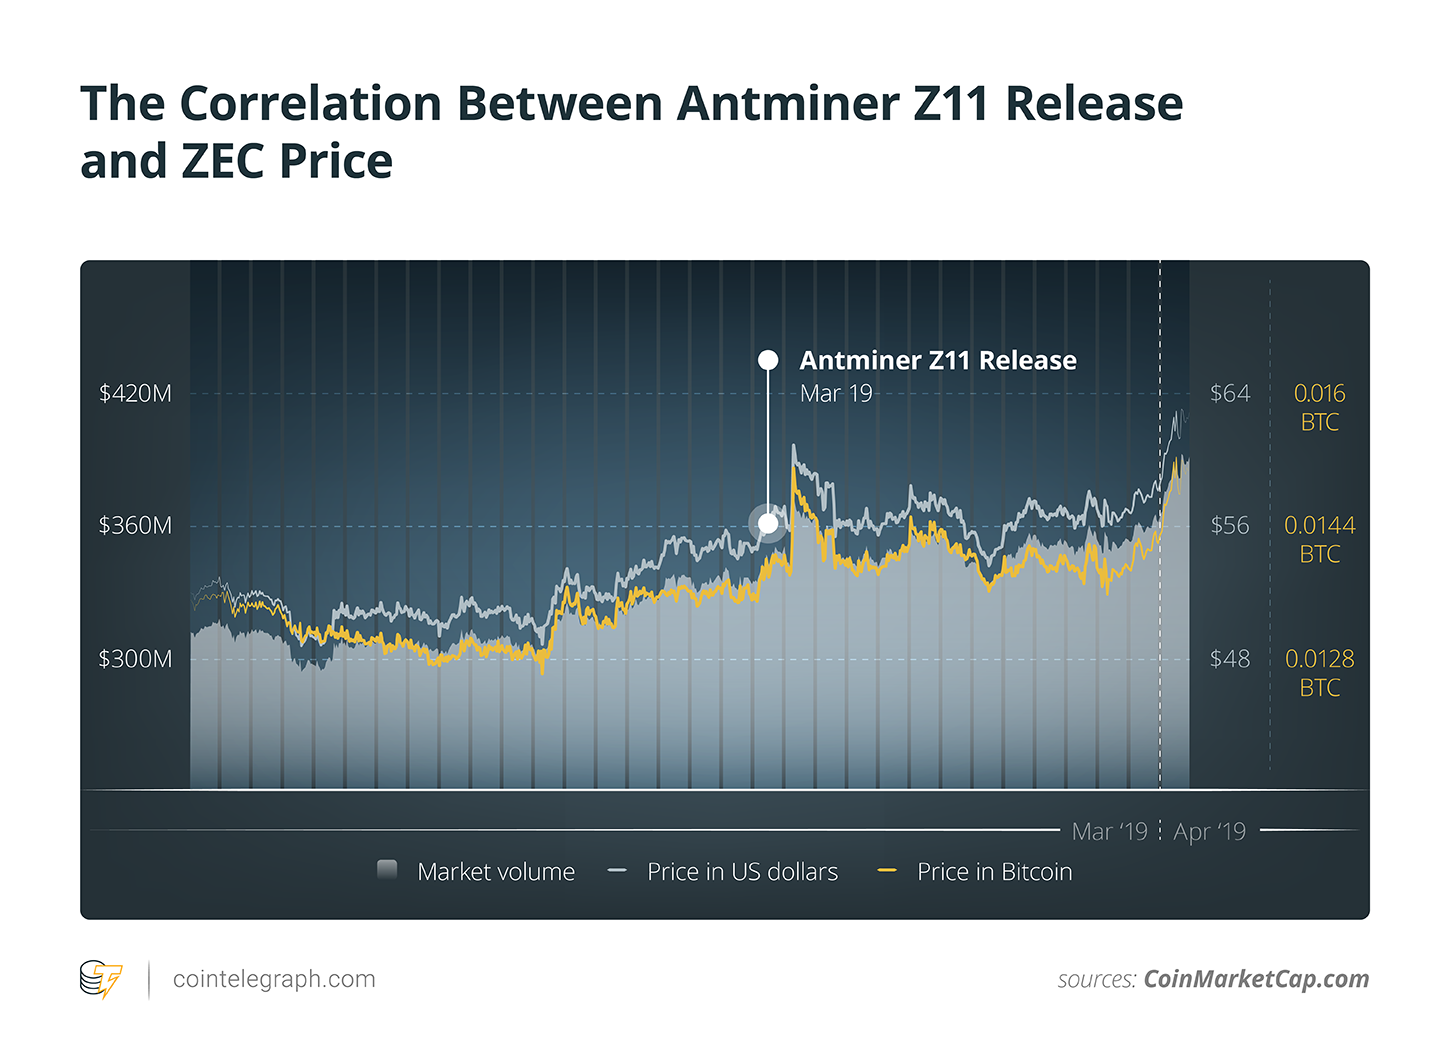 The Correlation Between Antminer Z11 Release and ZEC Price